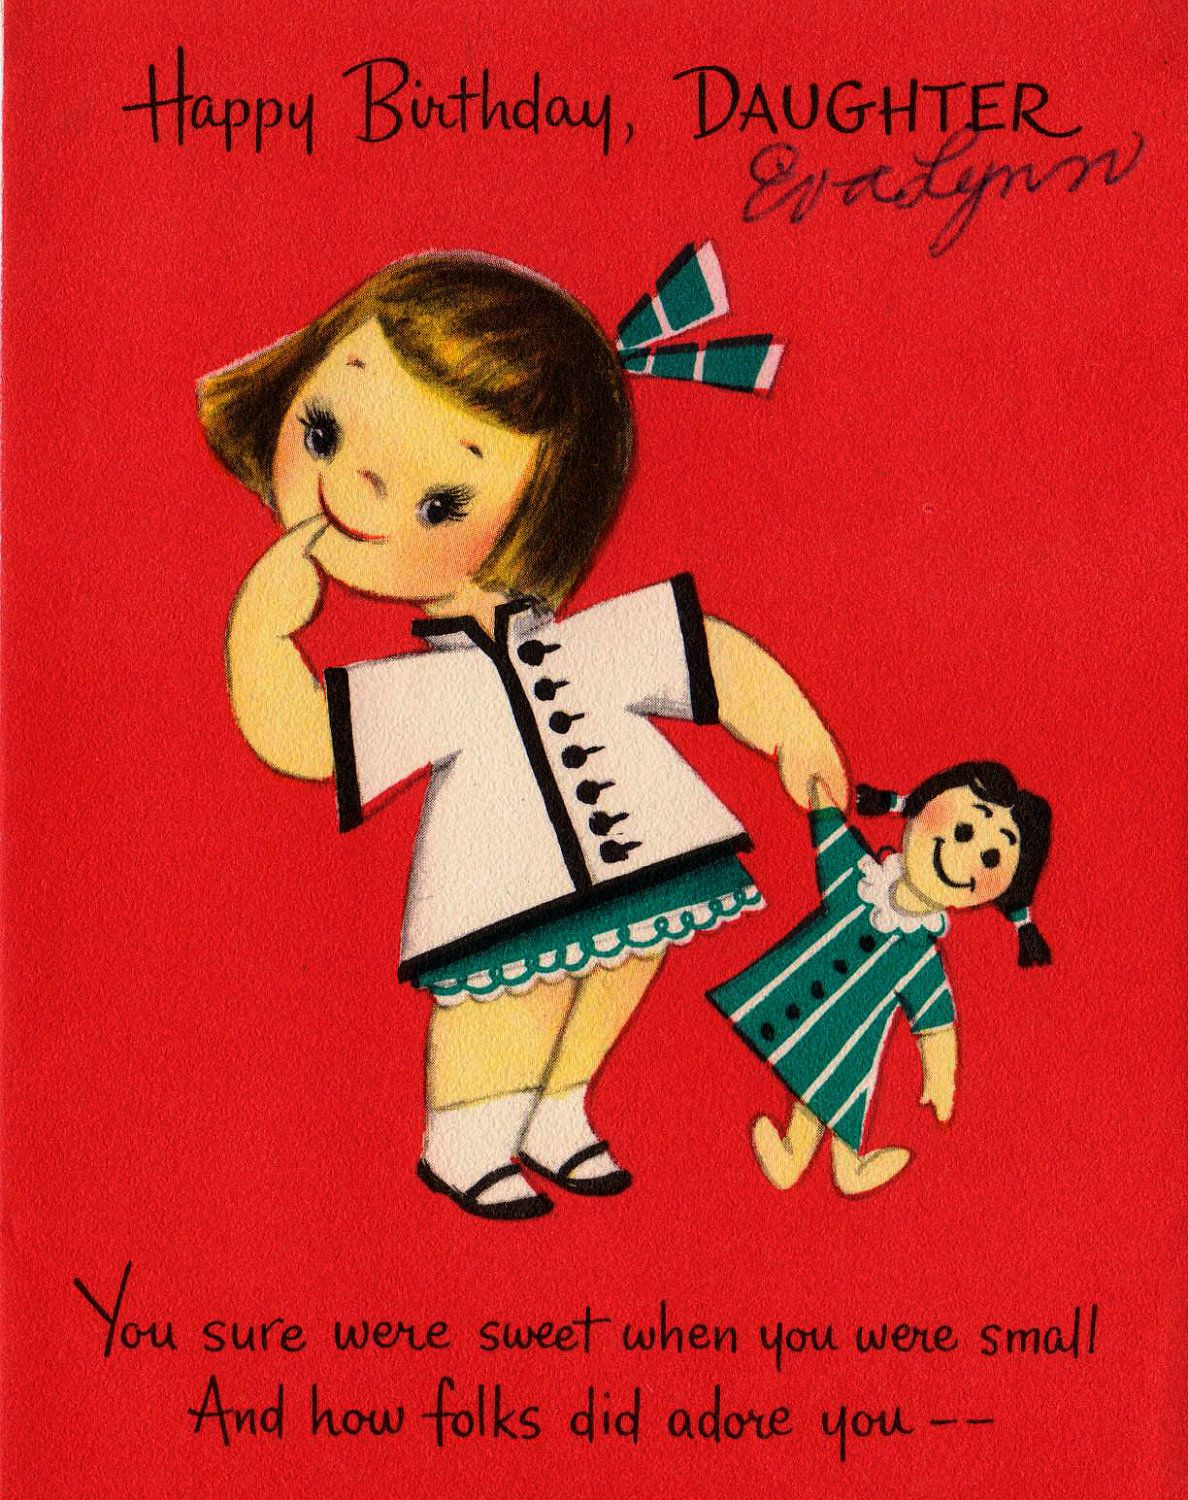 Vintage Hallmark 1950s Happy Birthday Daughter Greetings Card